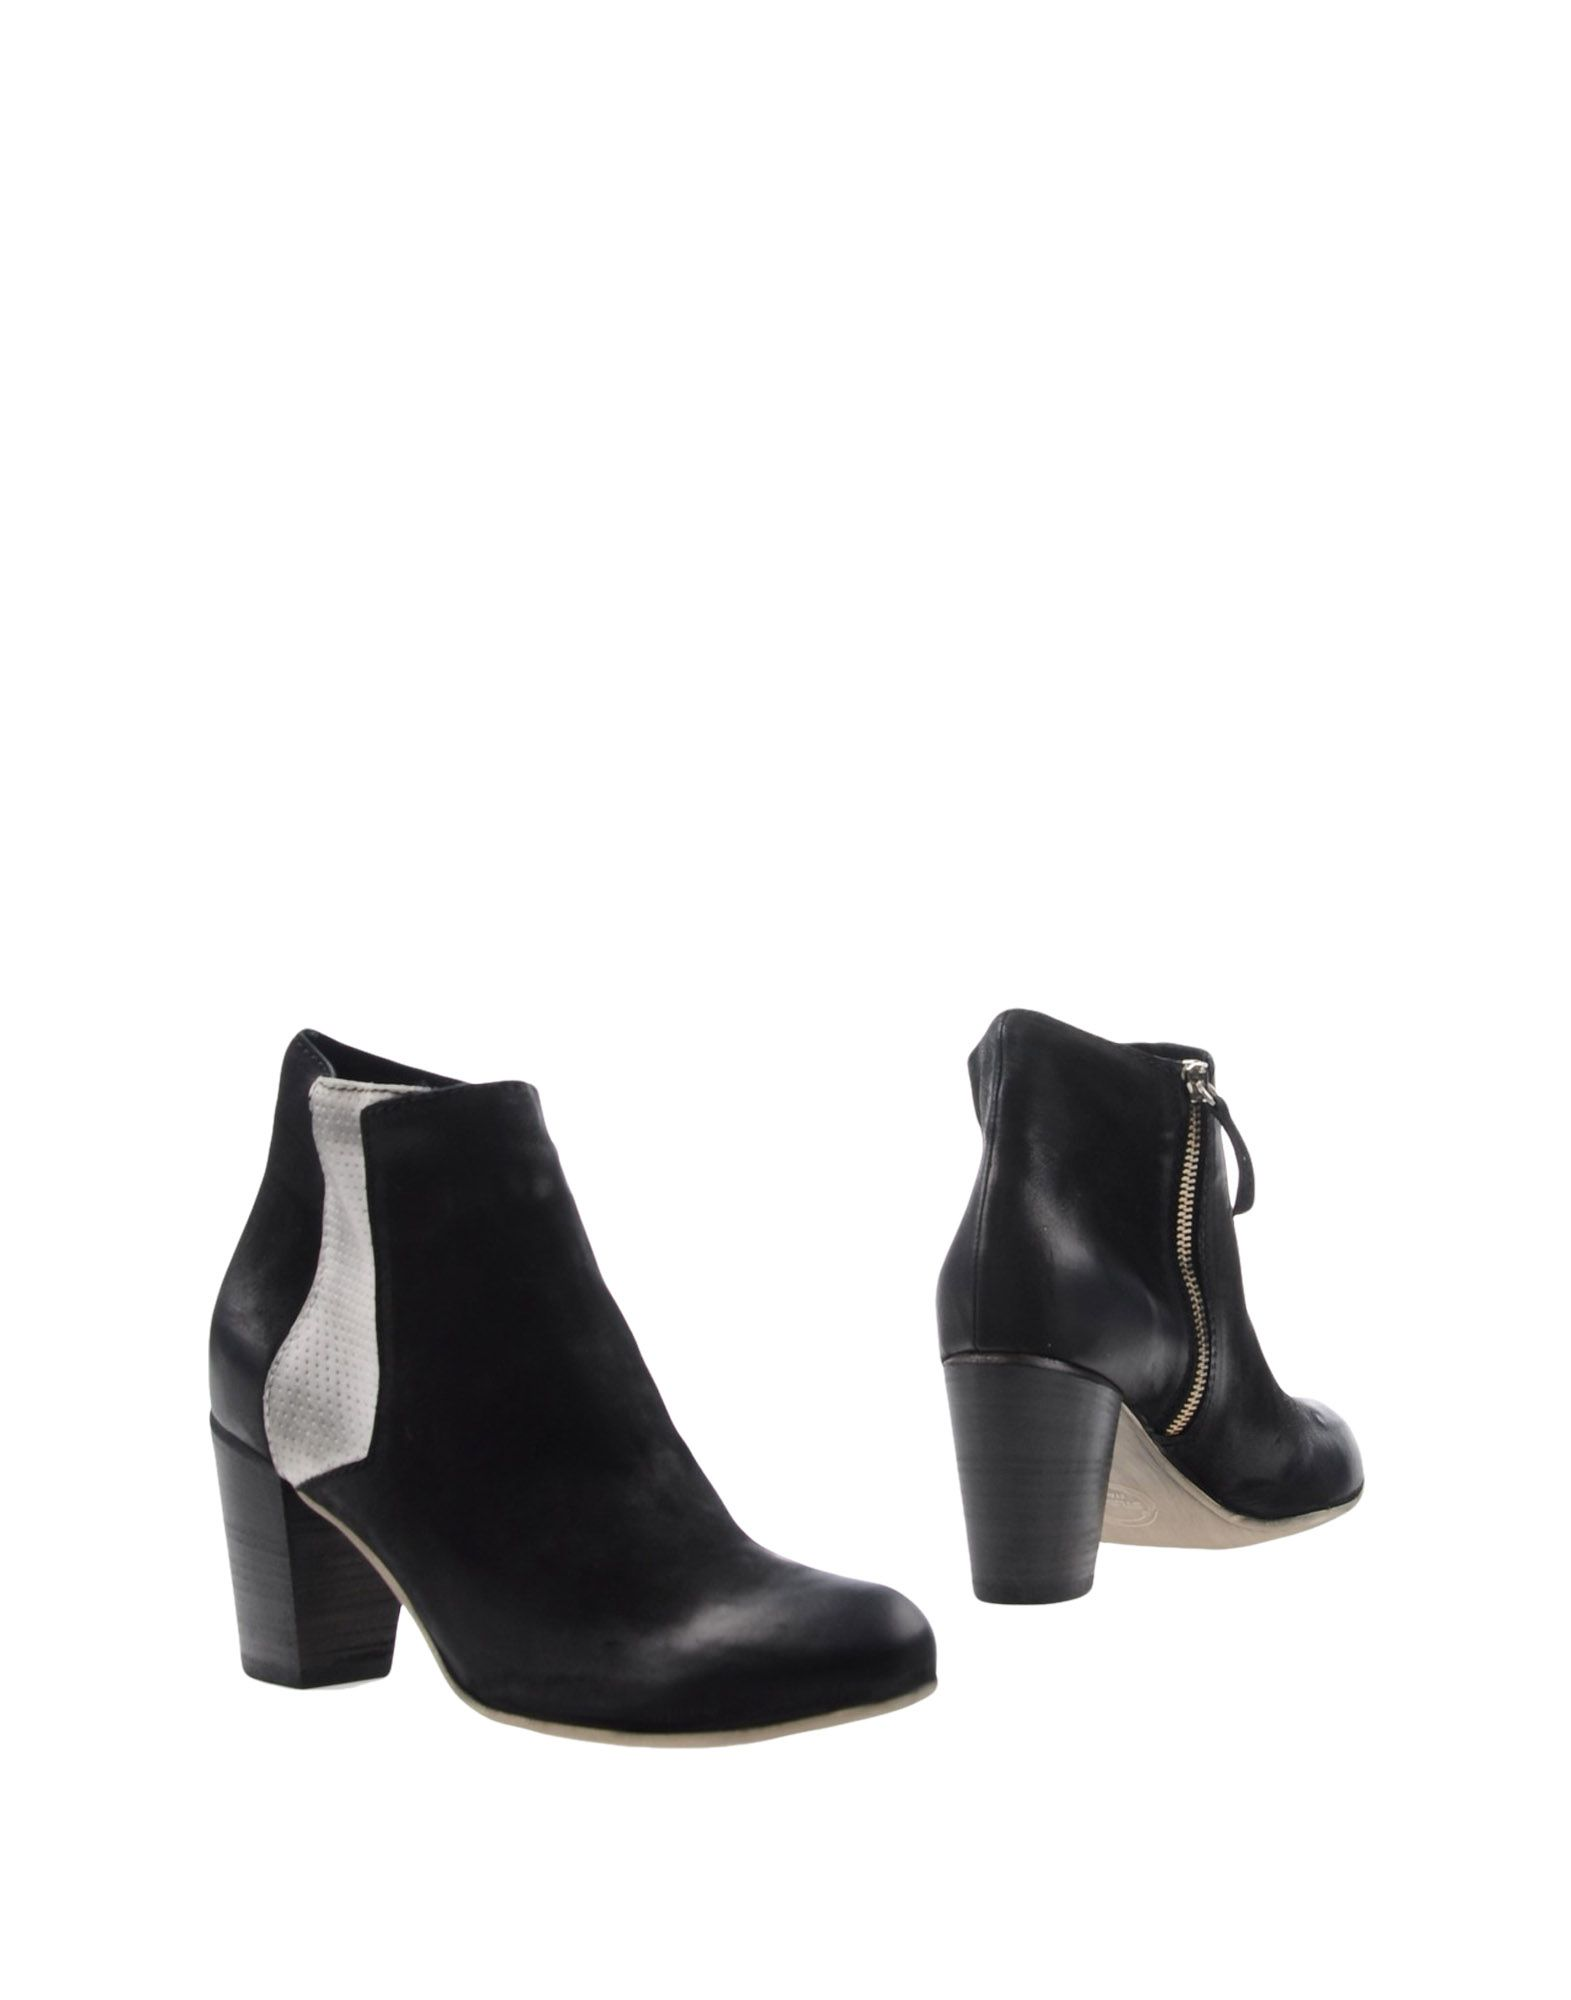 Bottine Studio By Volpato Femme - Bottines Studio By Volpato sur